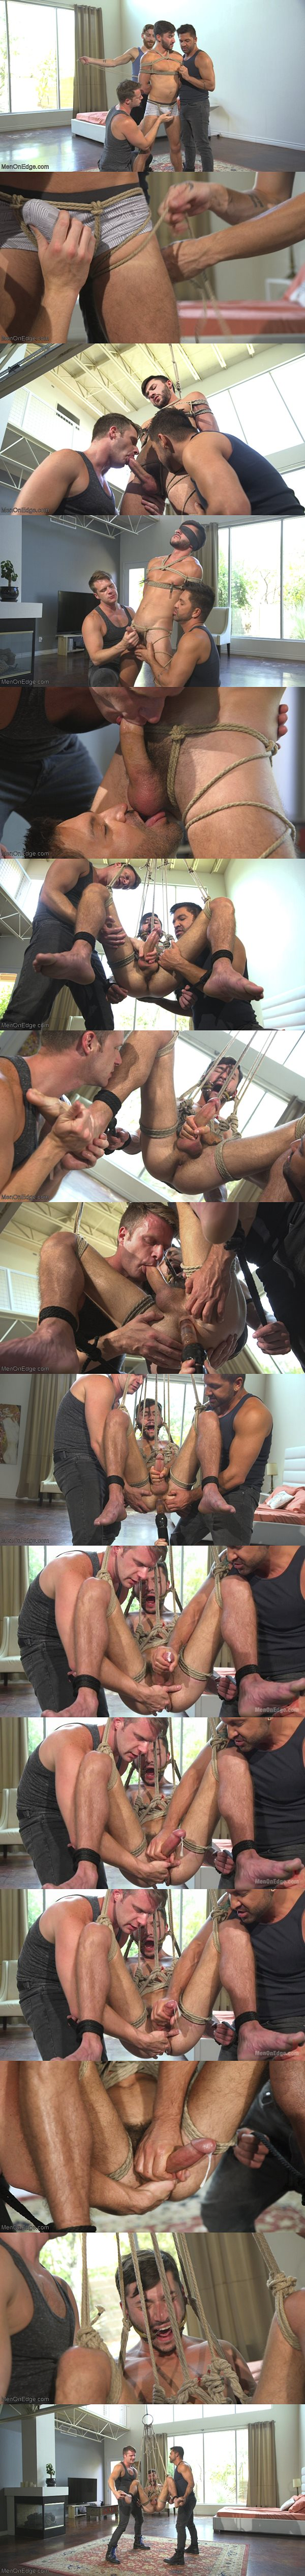 Menonedge - Scott DeMarco 02